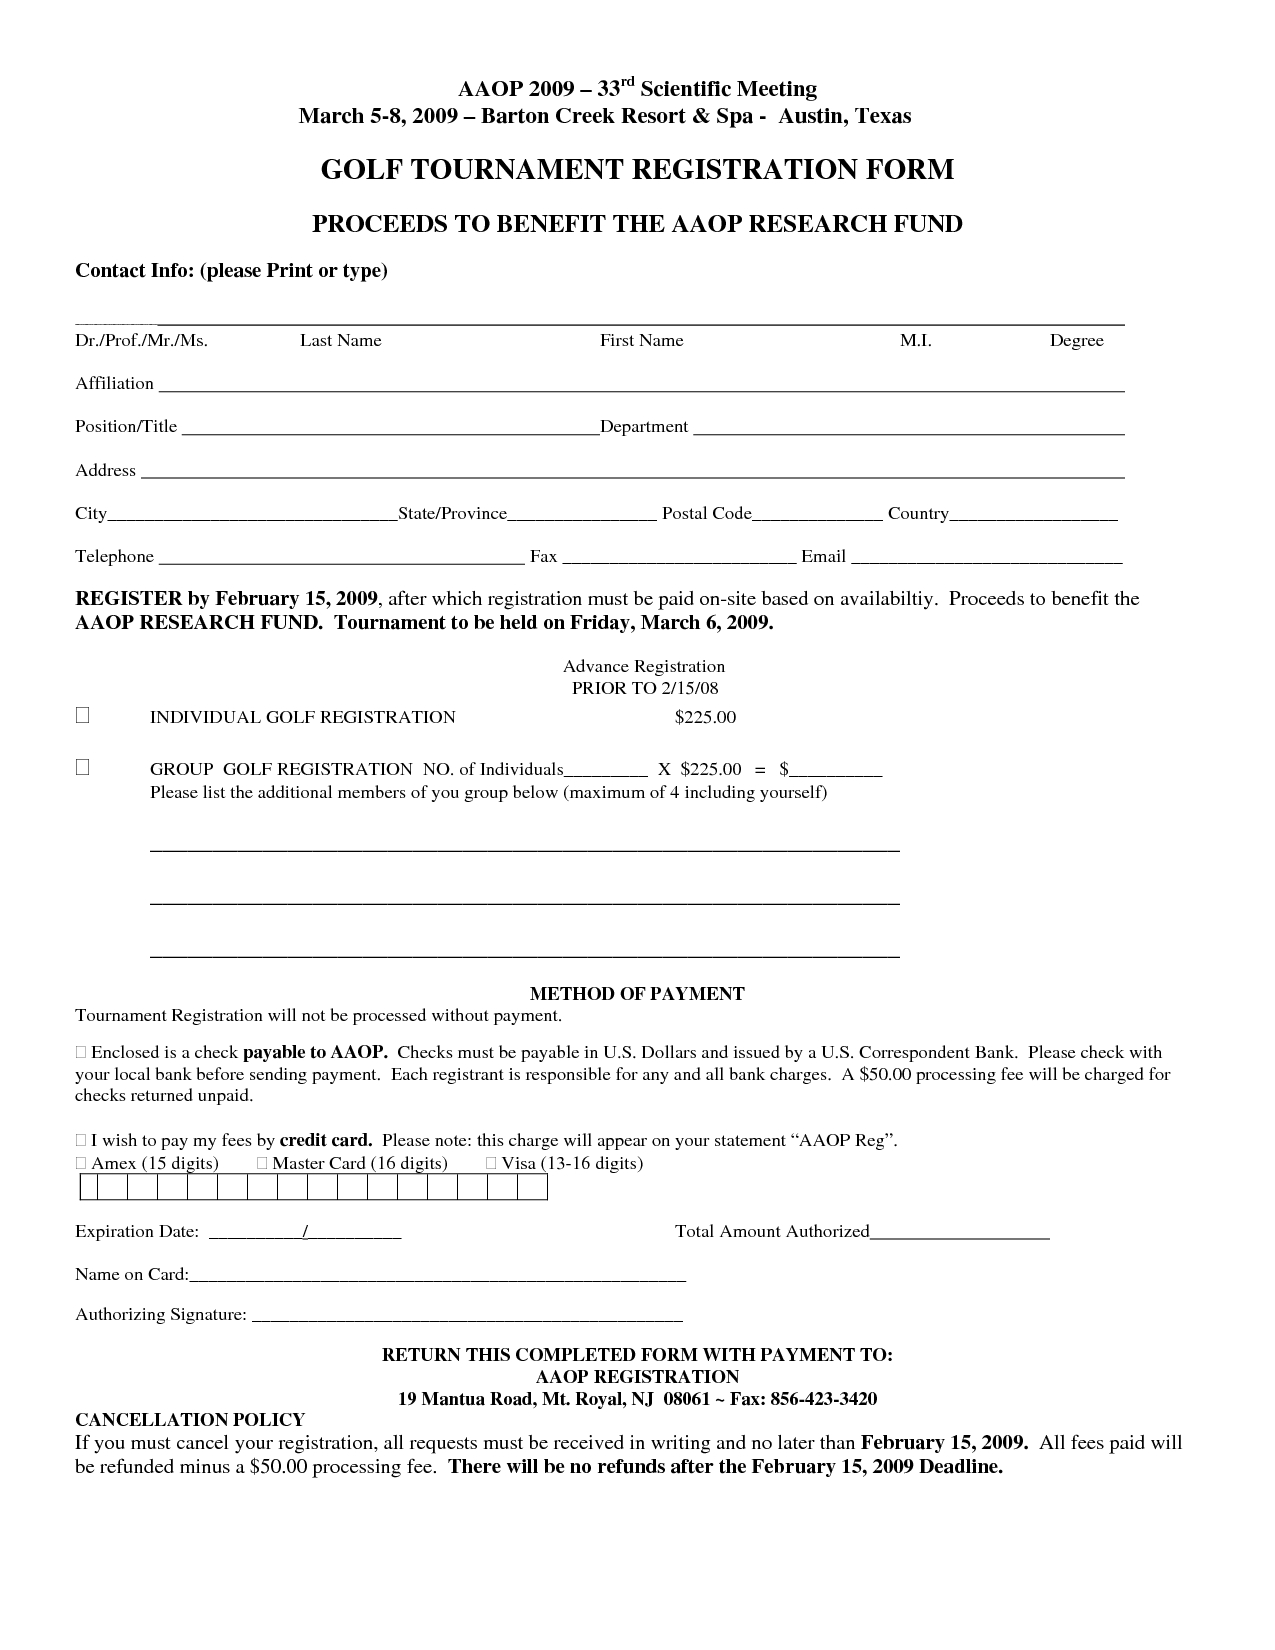 5k Sponsorship Letter Template - Free Registration form Template